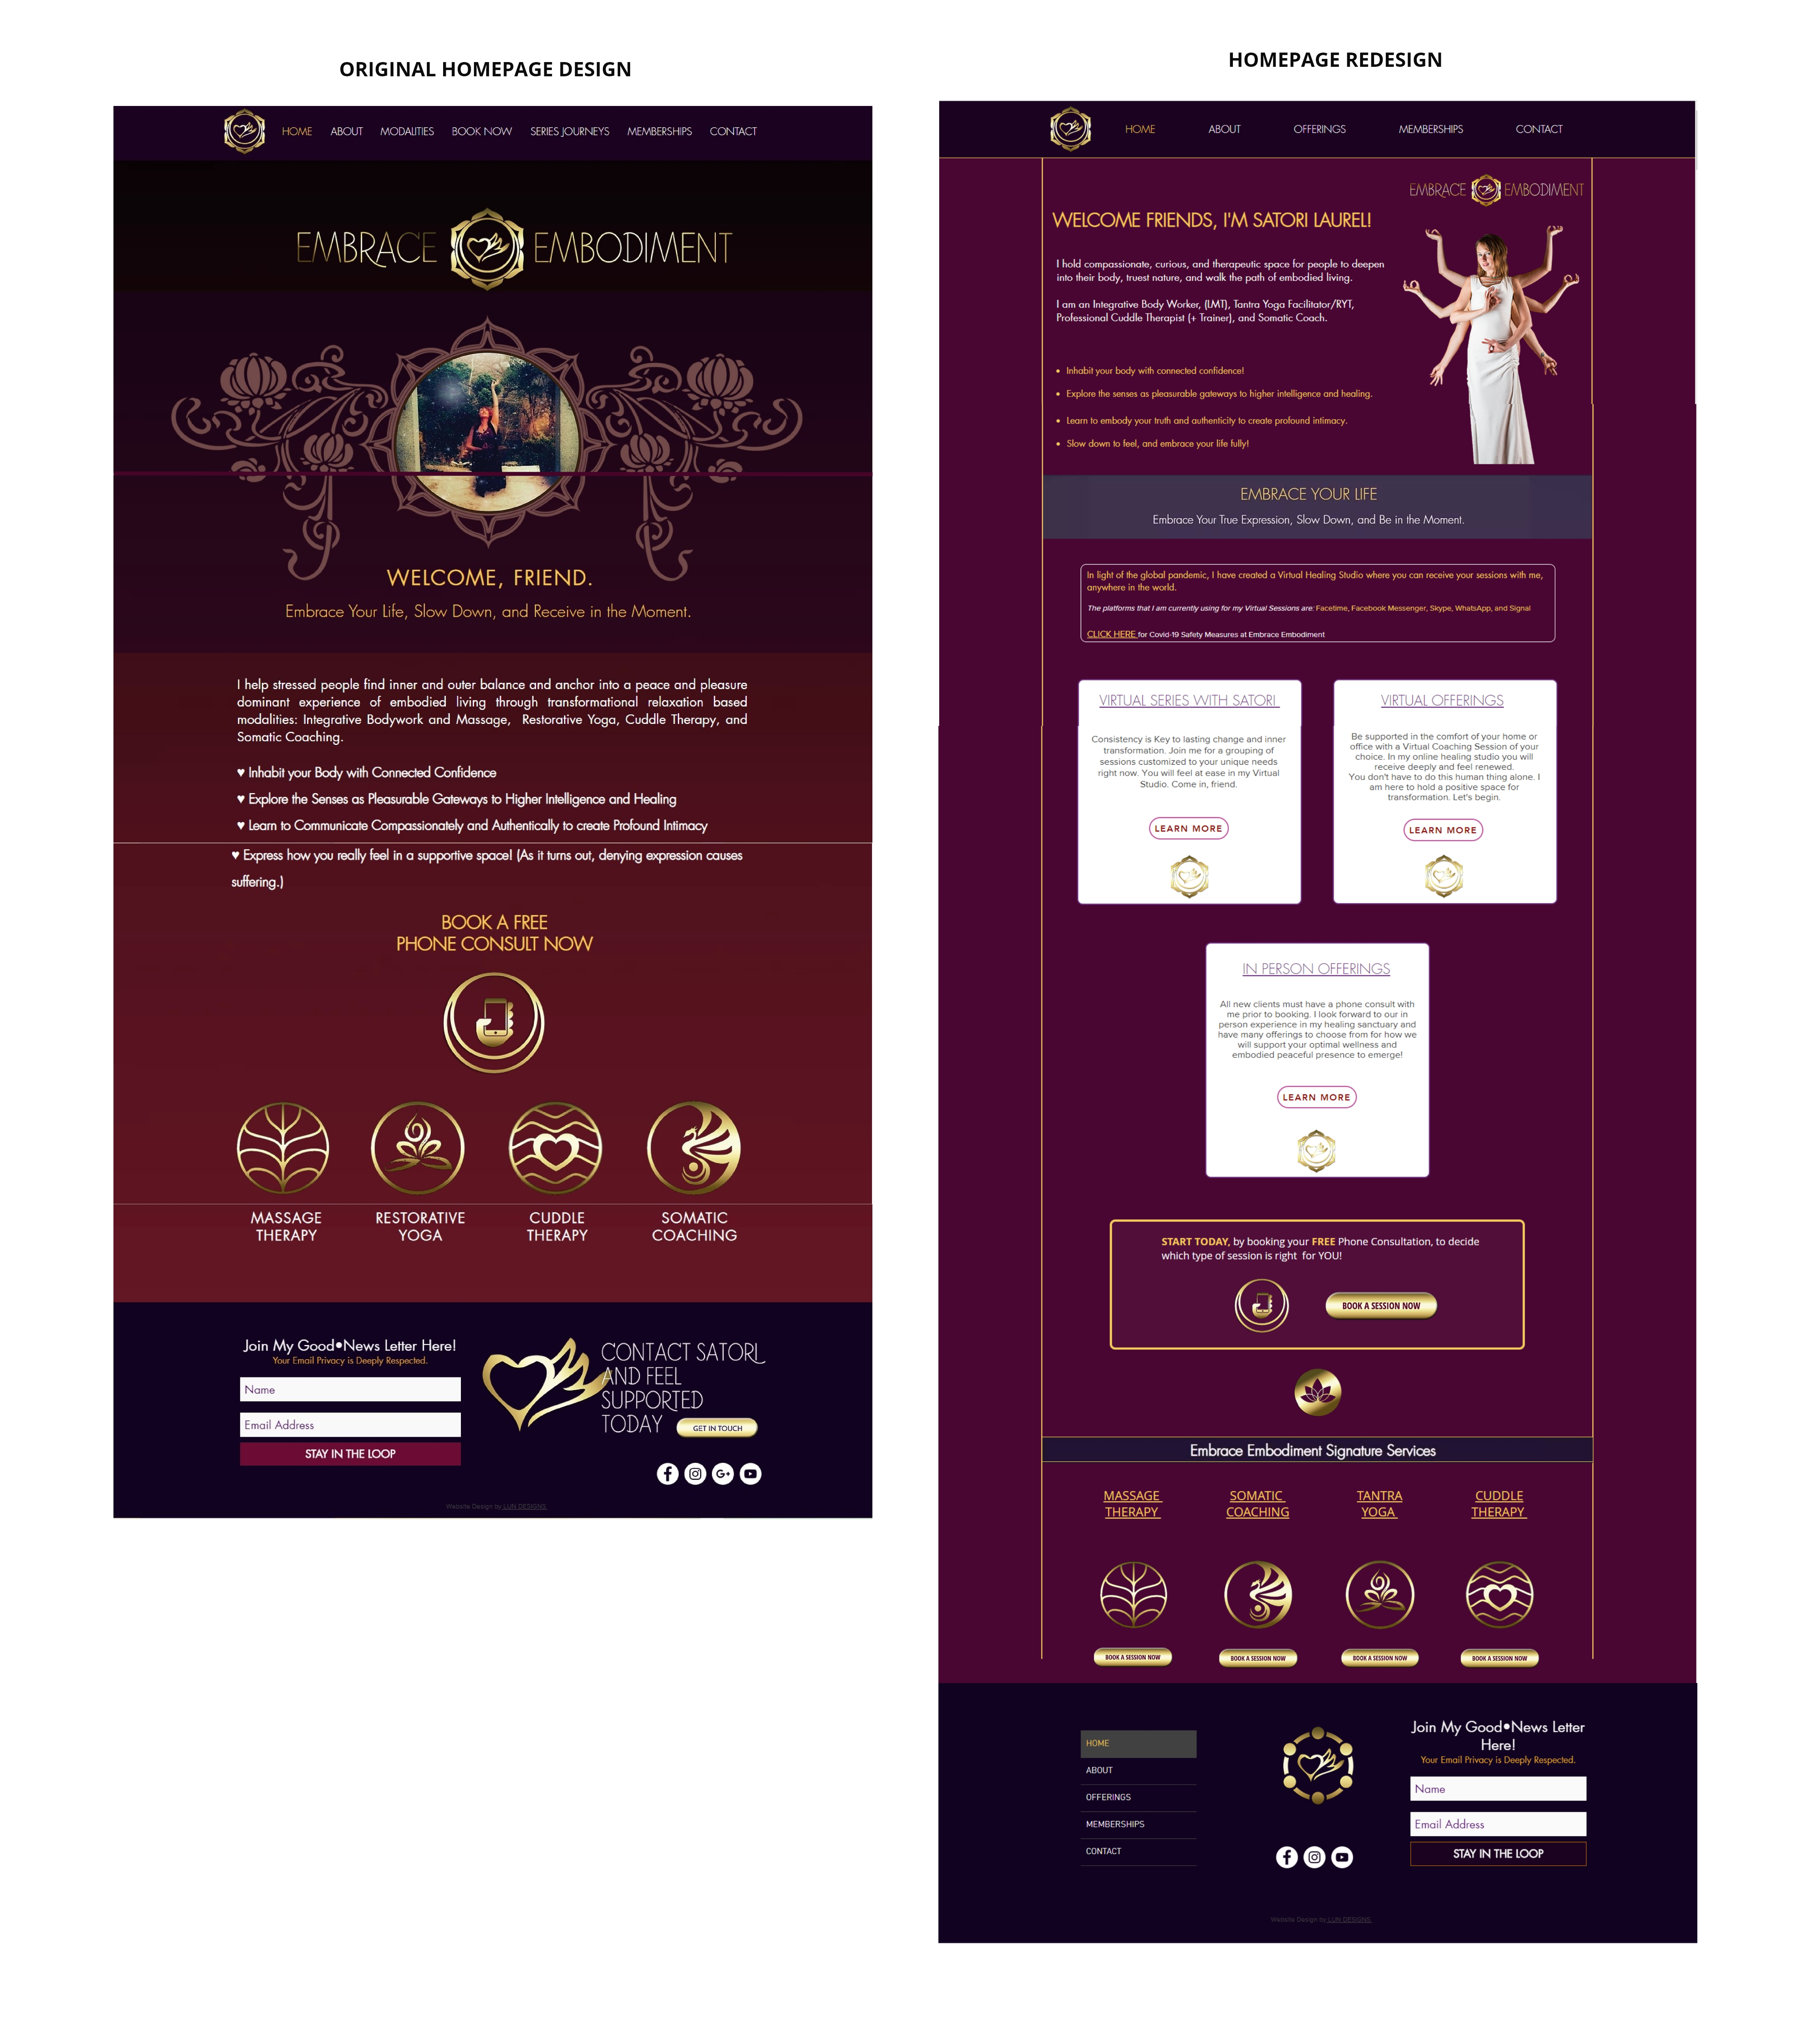 The New Homepage Utilizes a 2 column grid to allow for more information to be displayed efficiently.It Establishes a Strong Page Hierarchy and places and Emphasis on the new Virtual Services, as per the clients request during Covid-19.